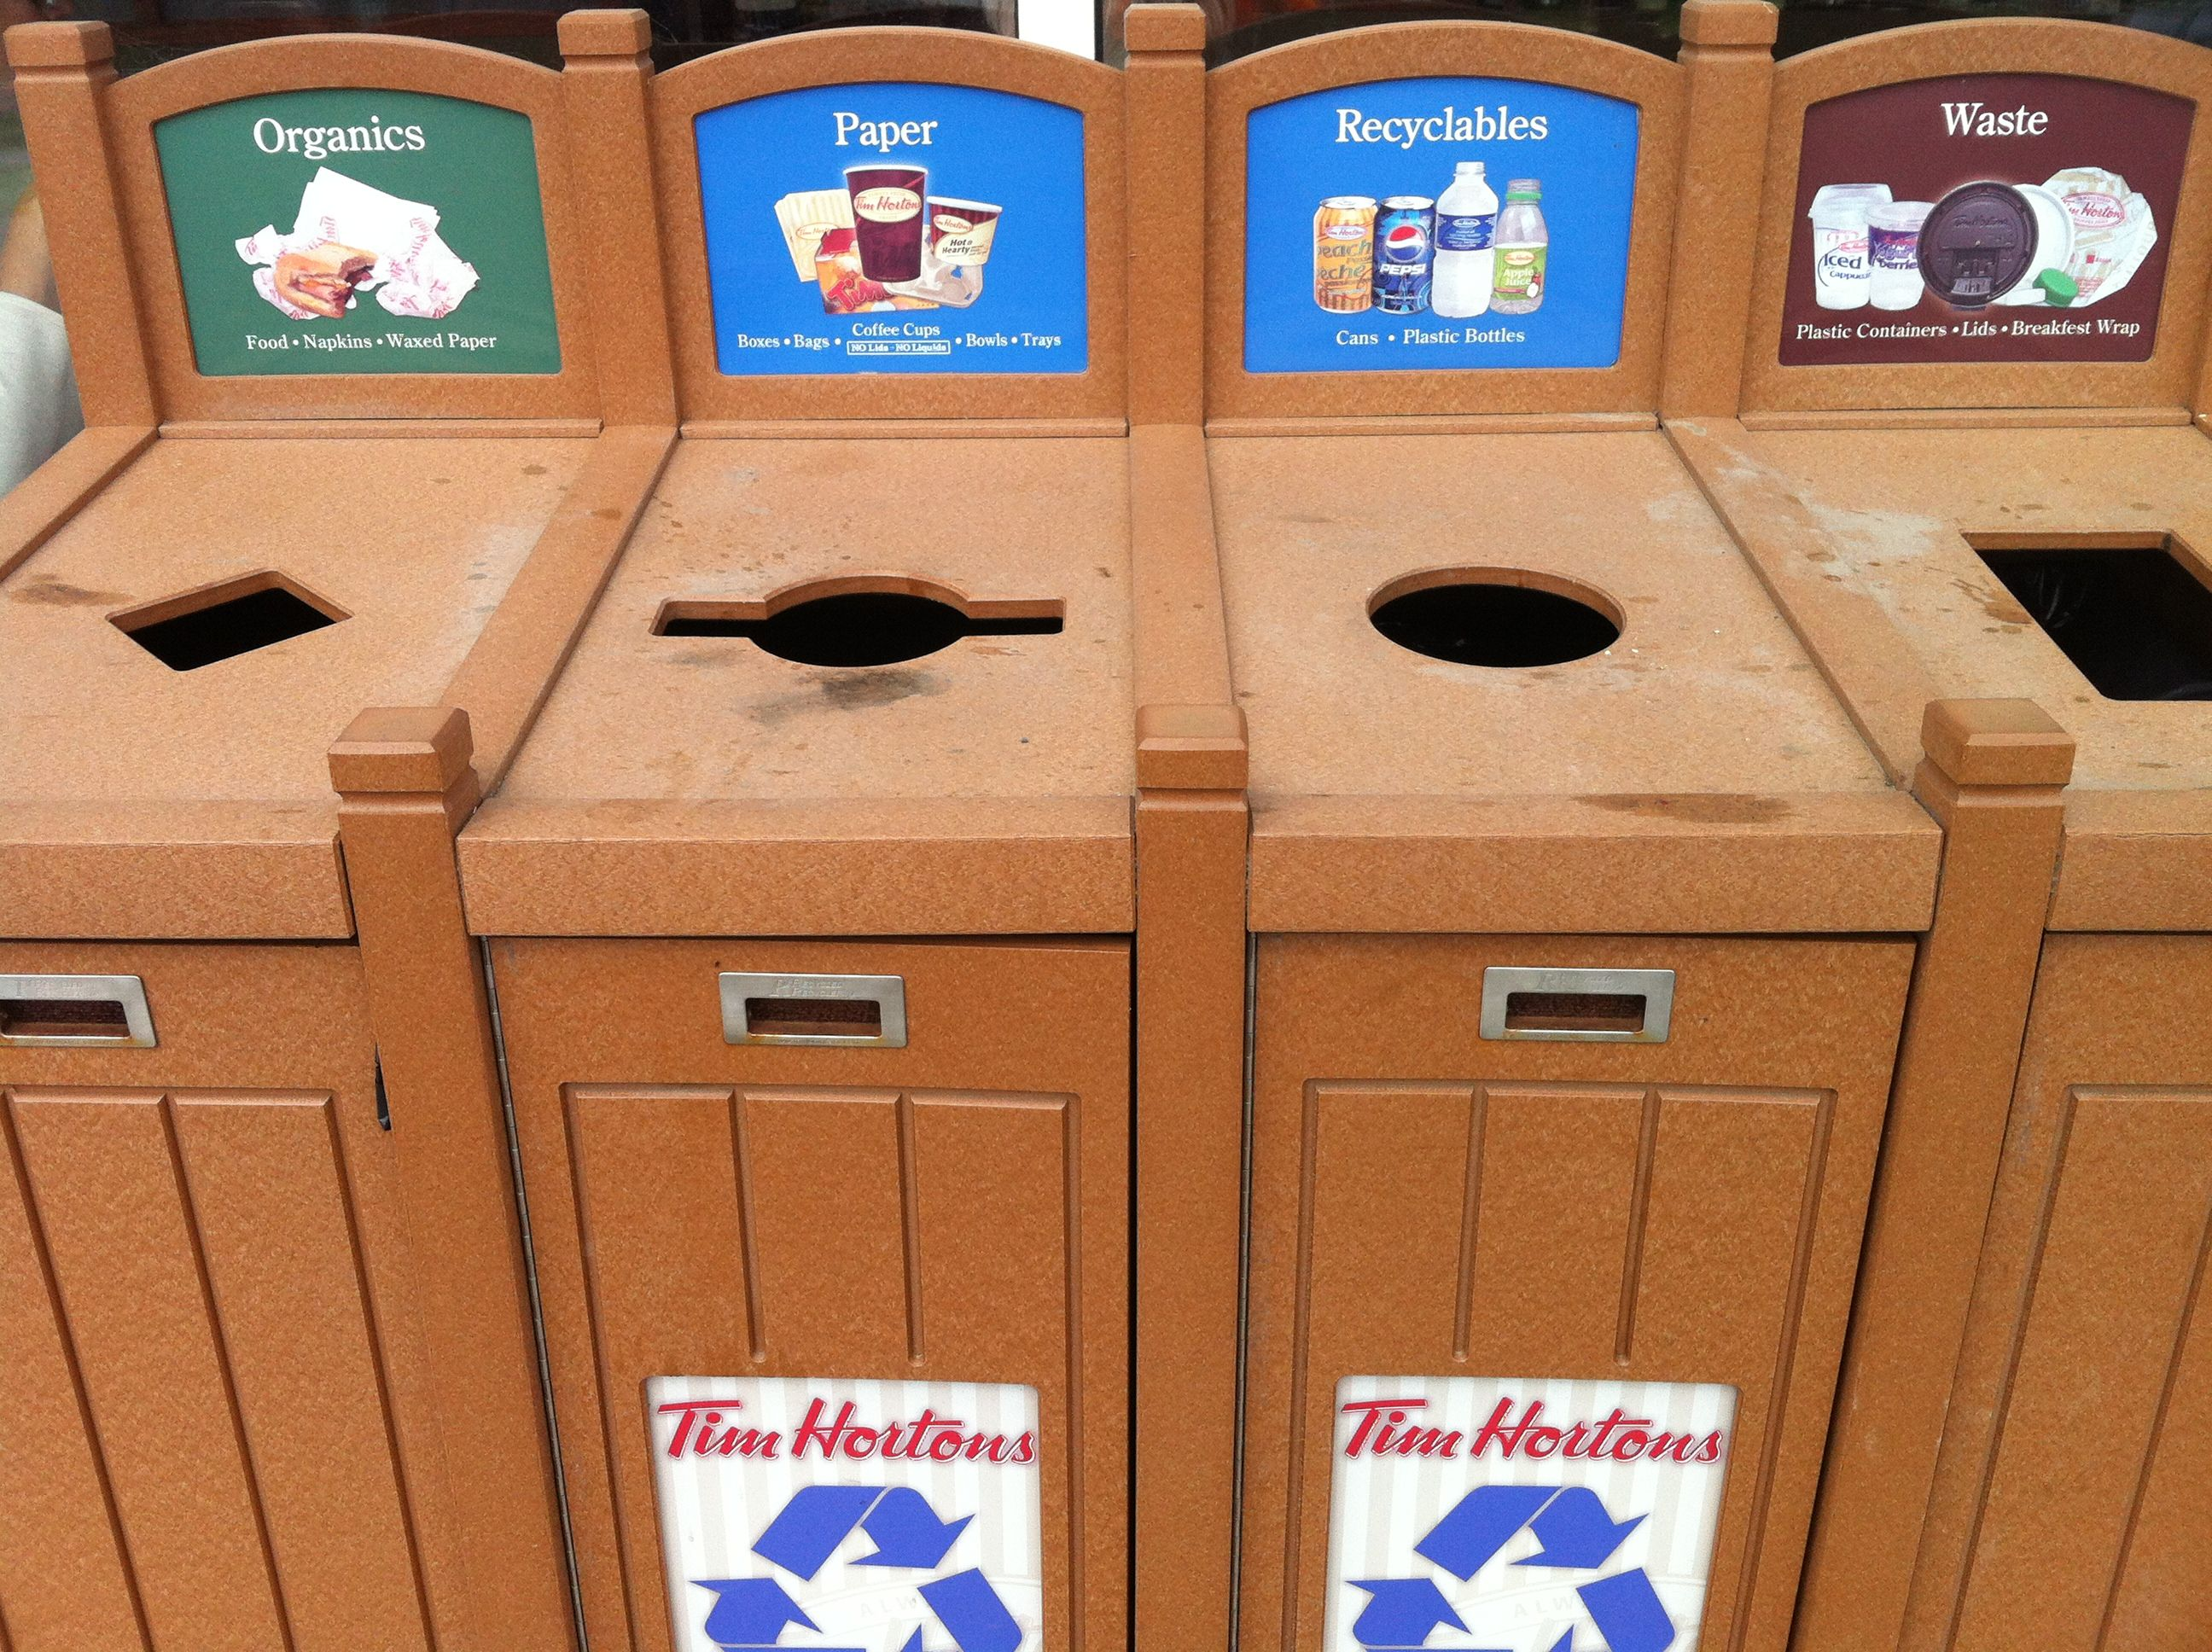 The Recycling Station At Tim Hortons In New Brunswick Also Collects Organics